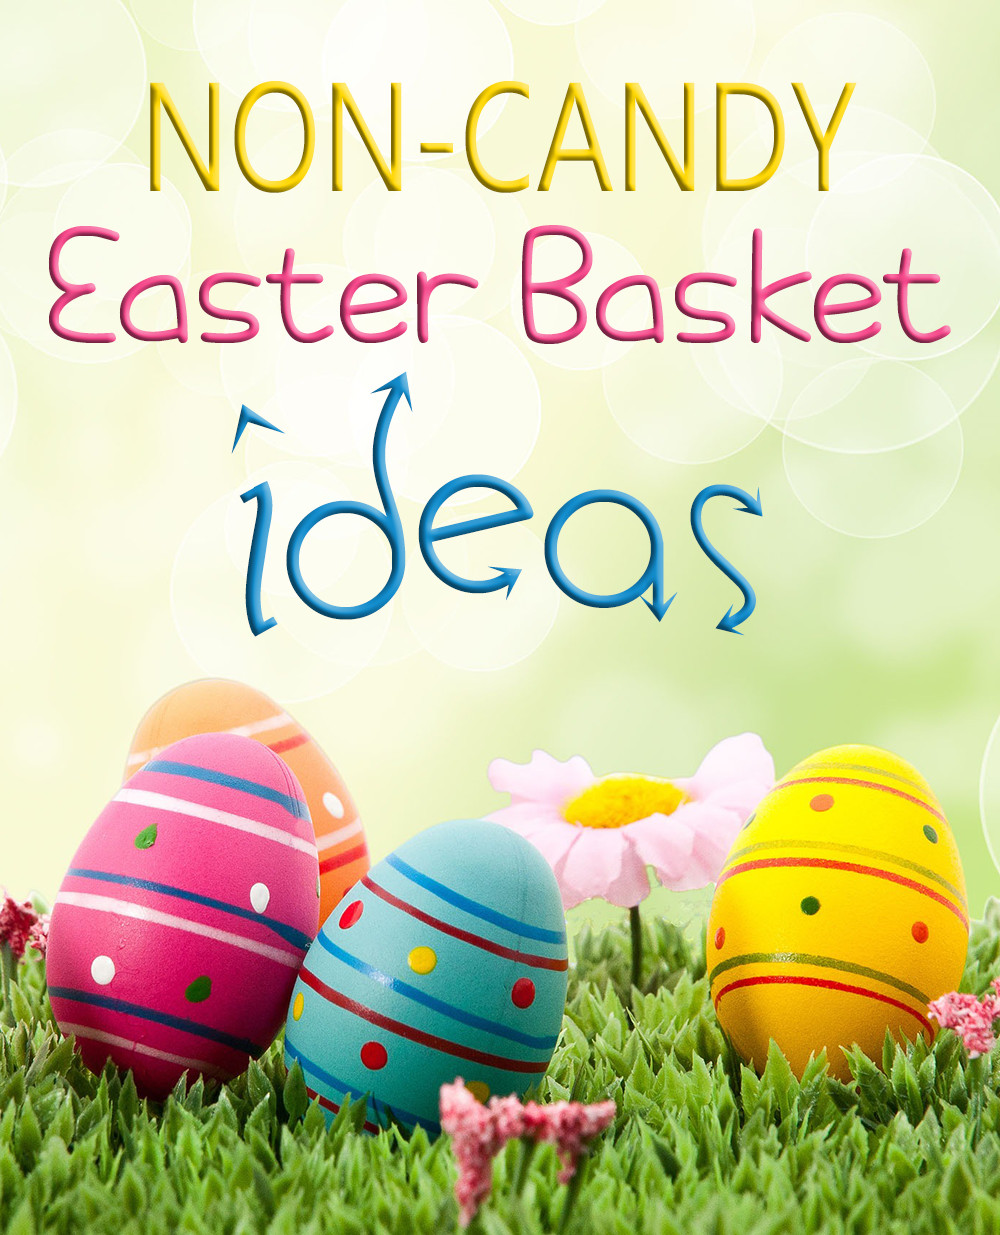 Trying to limit the amount of candy delivered by the Easter bunny? Check out these 10 non-candy ideas to fill Easter baskets! - SahmReviews.com